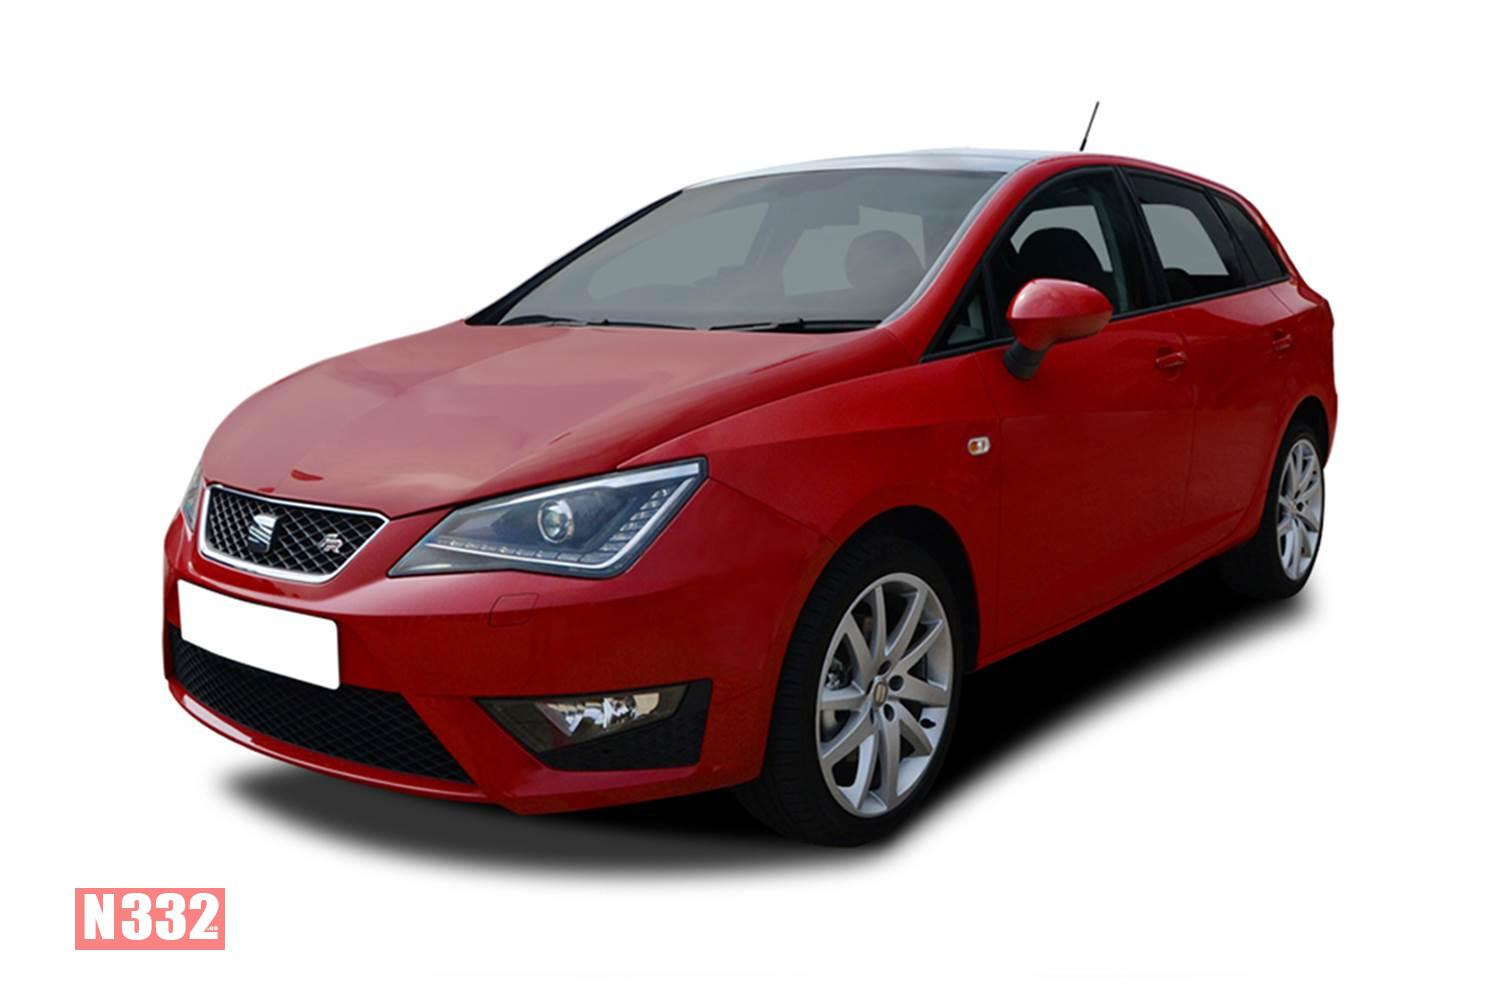 seat ibiza n332 driving in spain. Black Bedroom Furniture Sets. Home Design Ideas